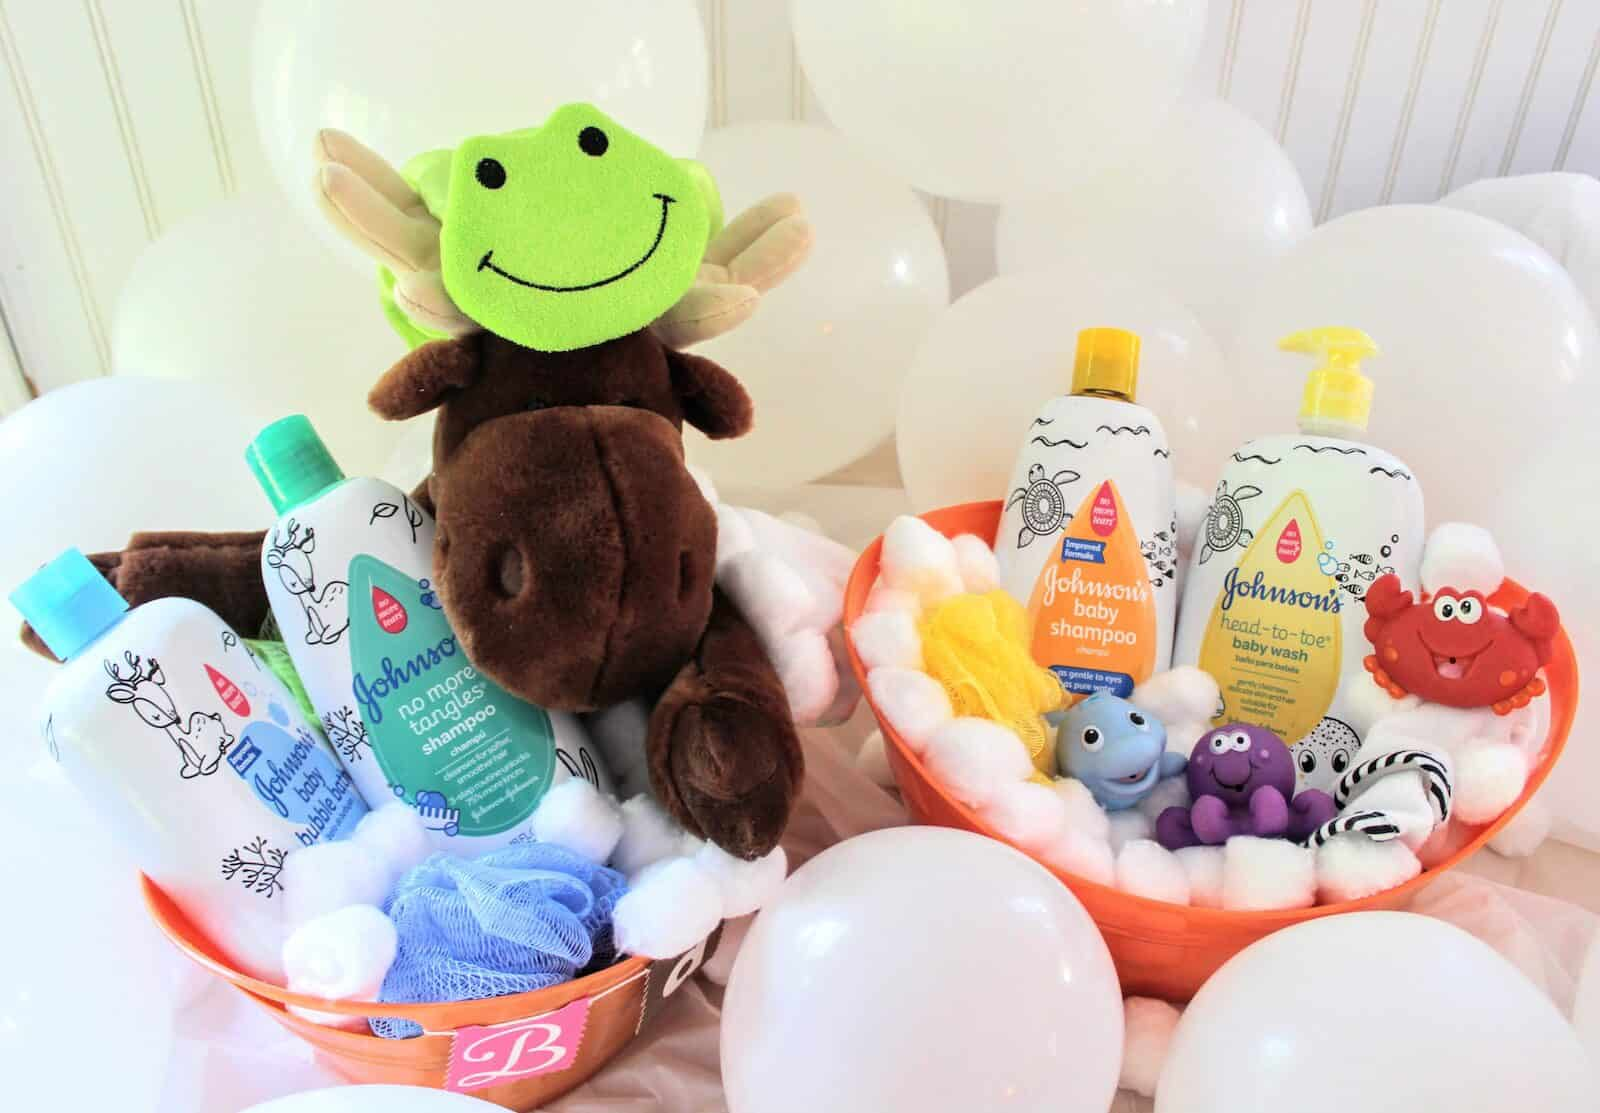 Easy & Adorable Bubble Bath Baby Shower Gift Basket! A fun DIY baby shower present with all the bath necessities makes the perfect baby shower gift for girls or boys! #babyshowergift #GiftingforBaby #ad